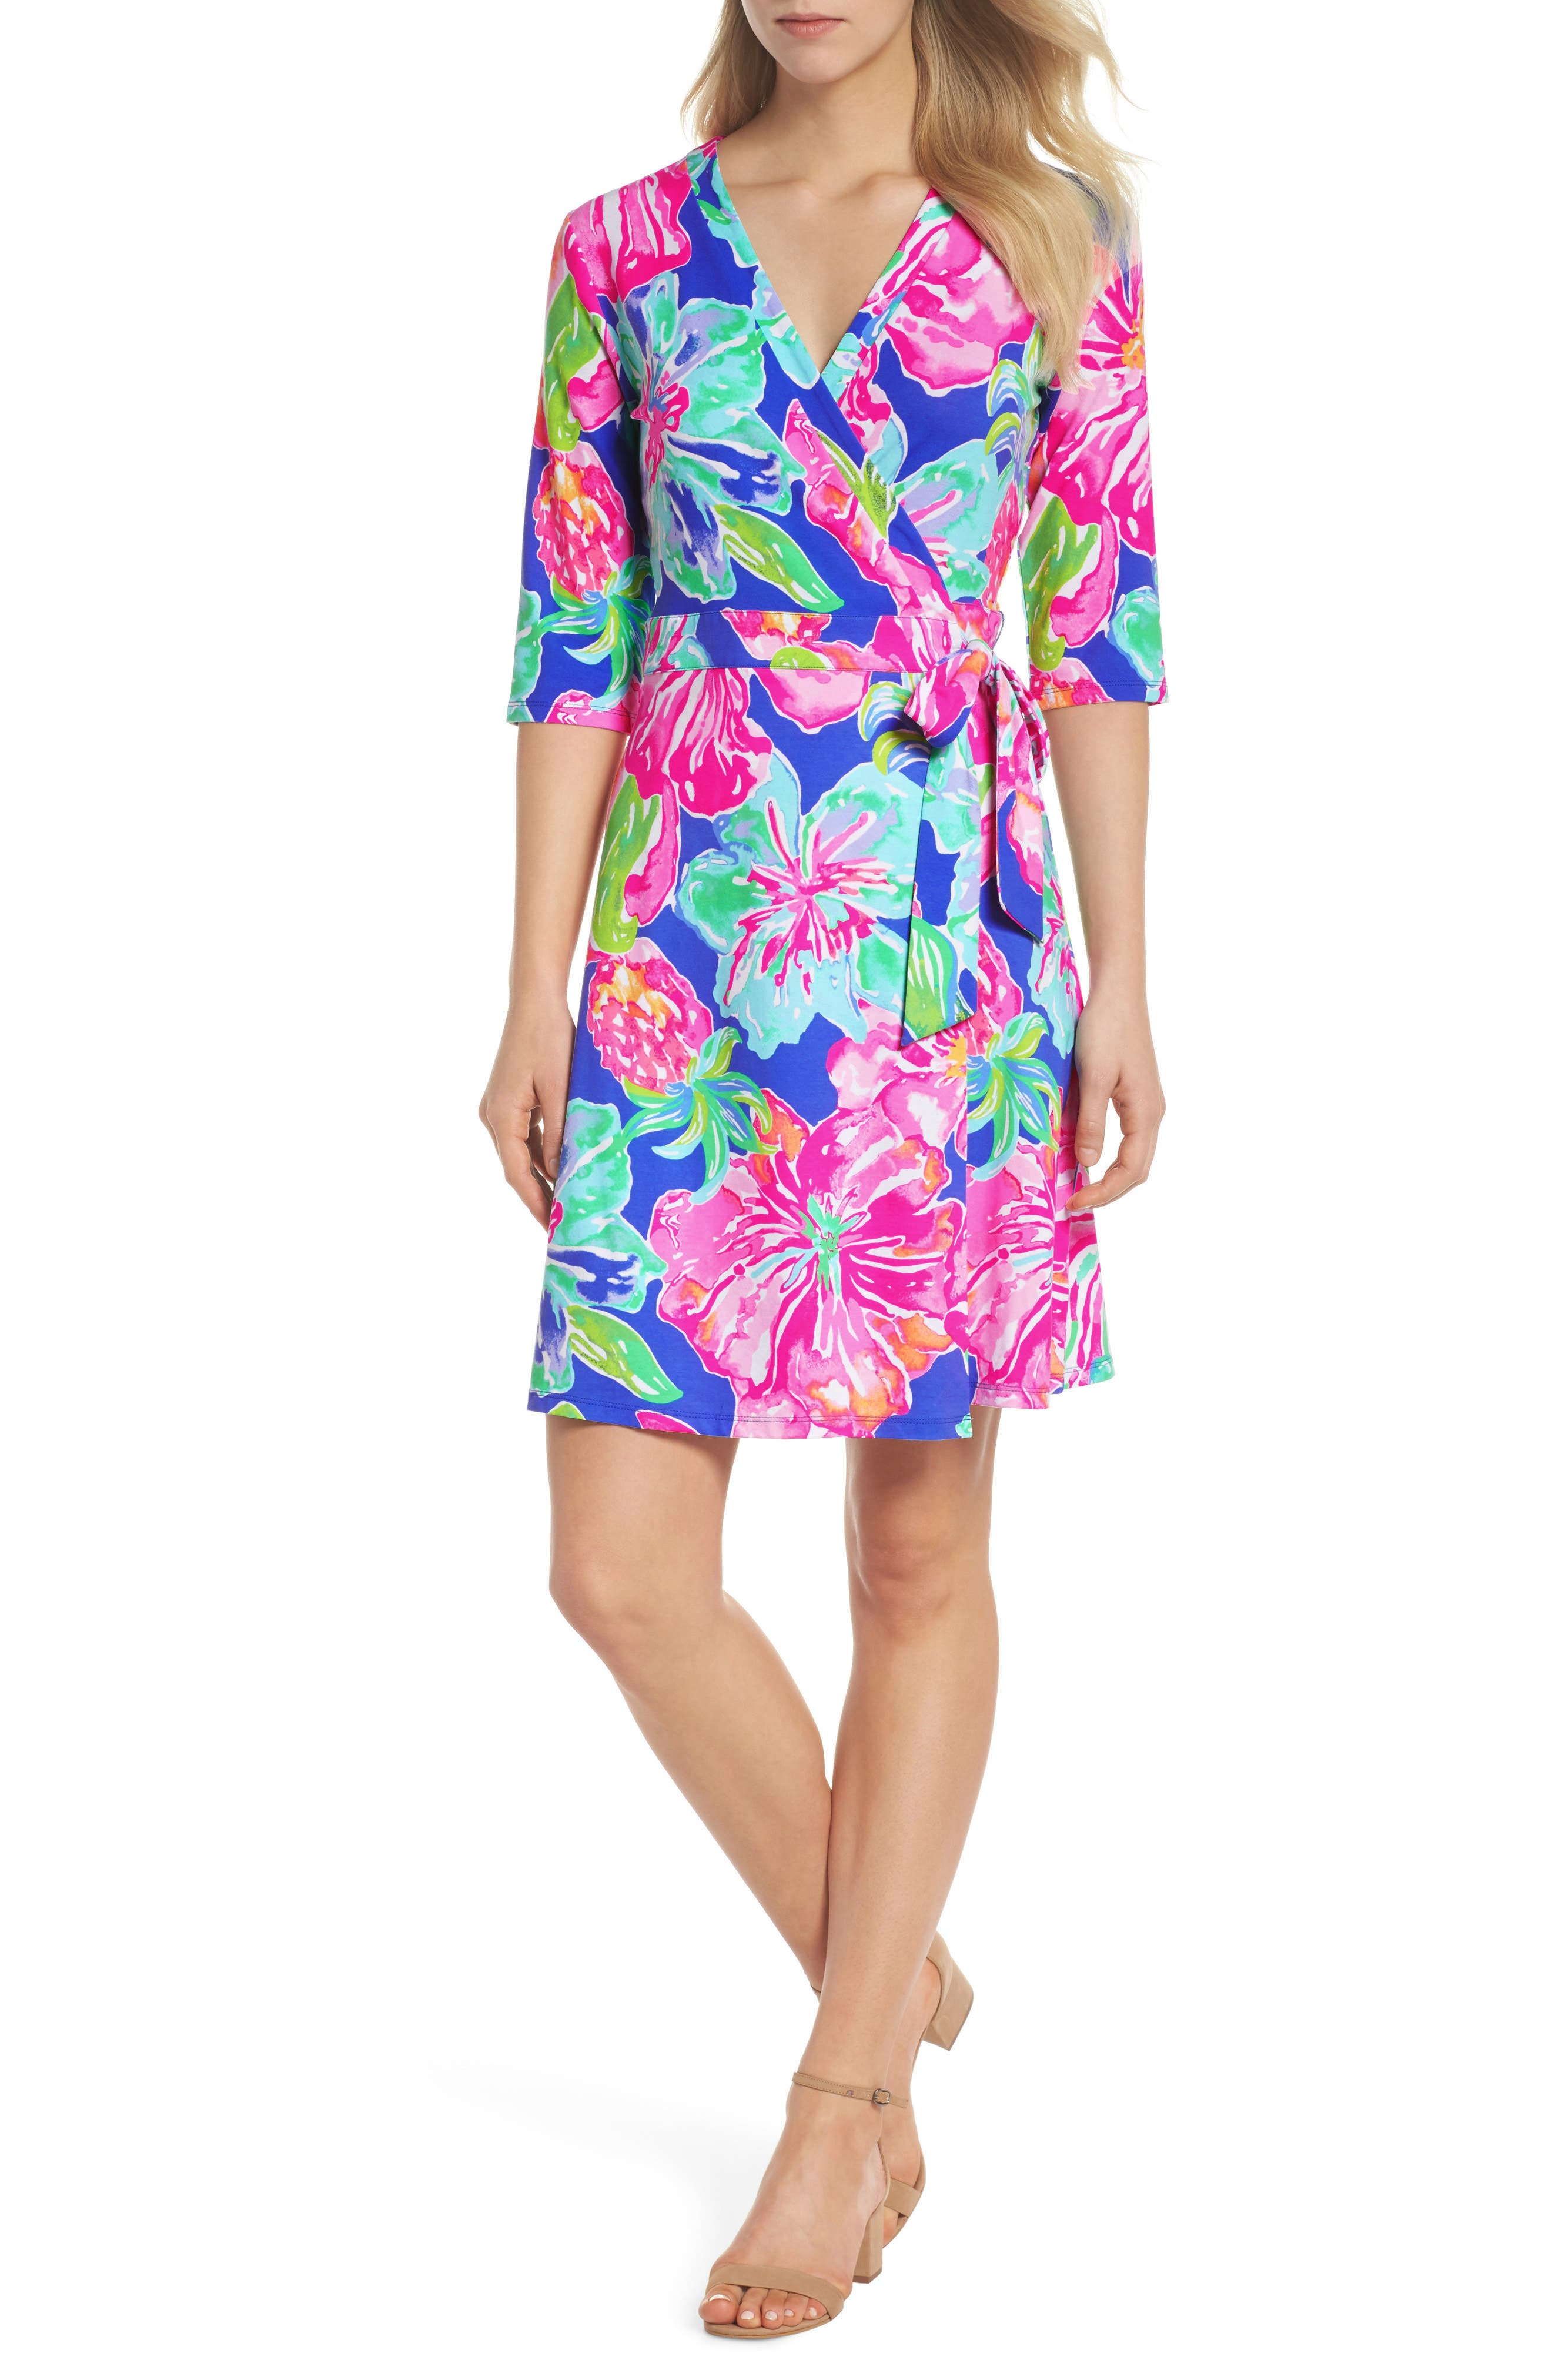 Marvista Wrap Dress,                         Main,                         color, BECKON BLUE JUNGLE UTOPIA